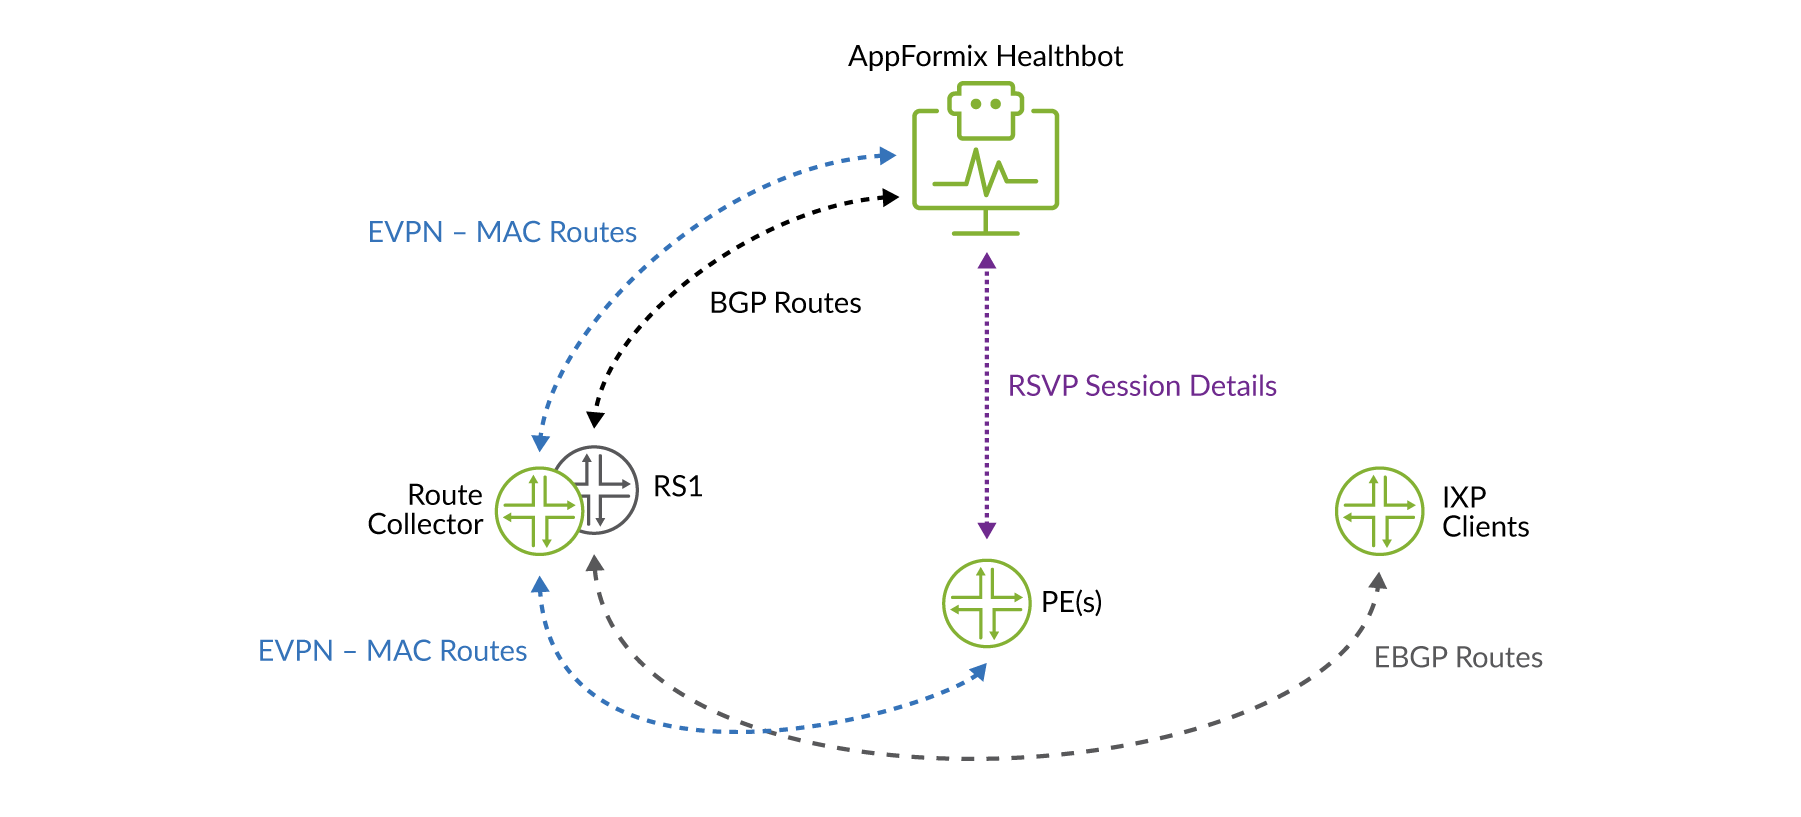 HealthBot Workflow for Validating Control Plane and Data Plane